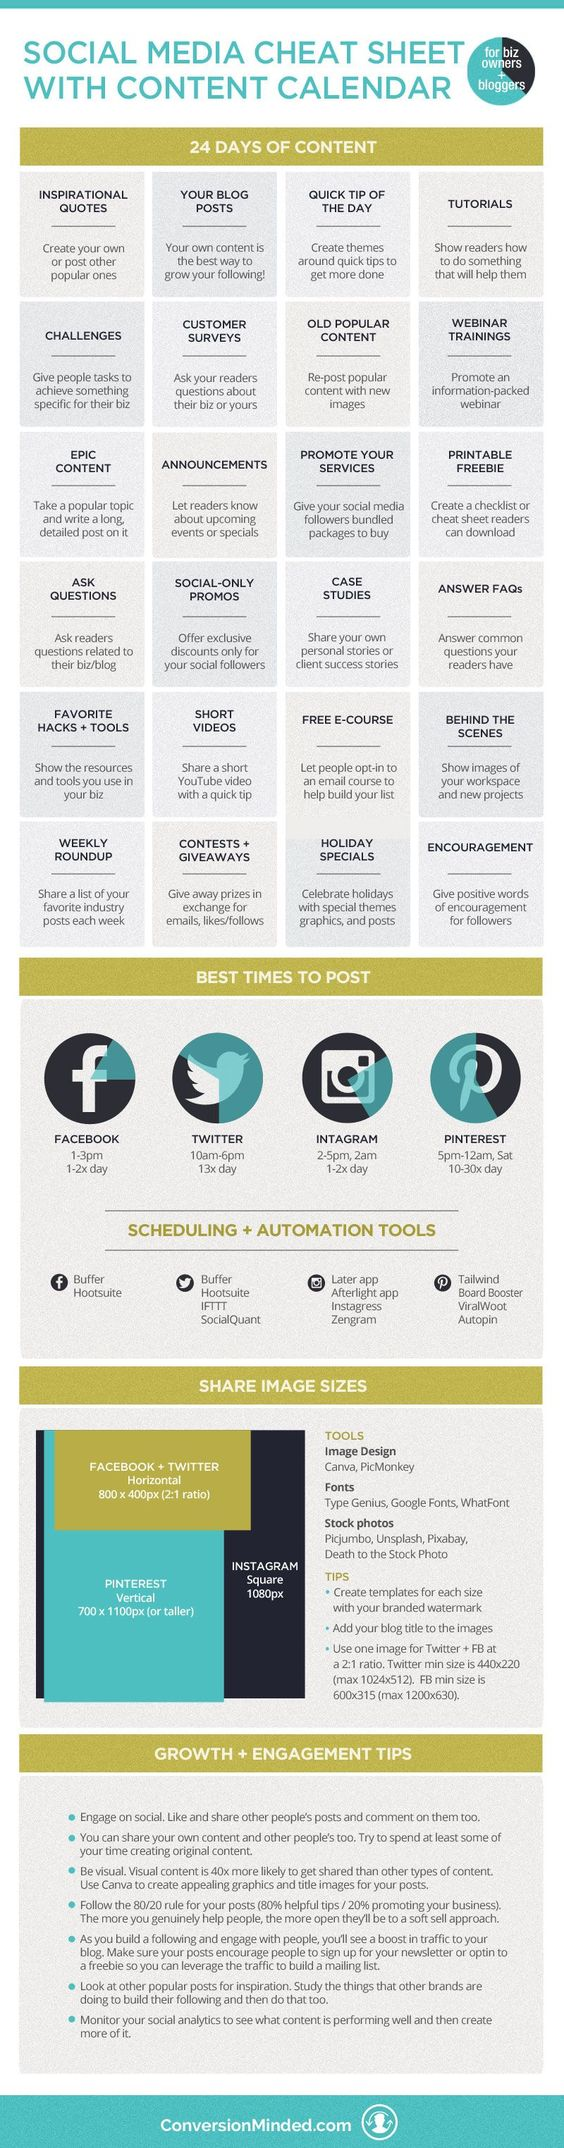 social media cheat sheet and content calendar